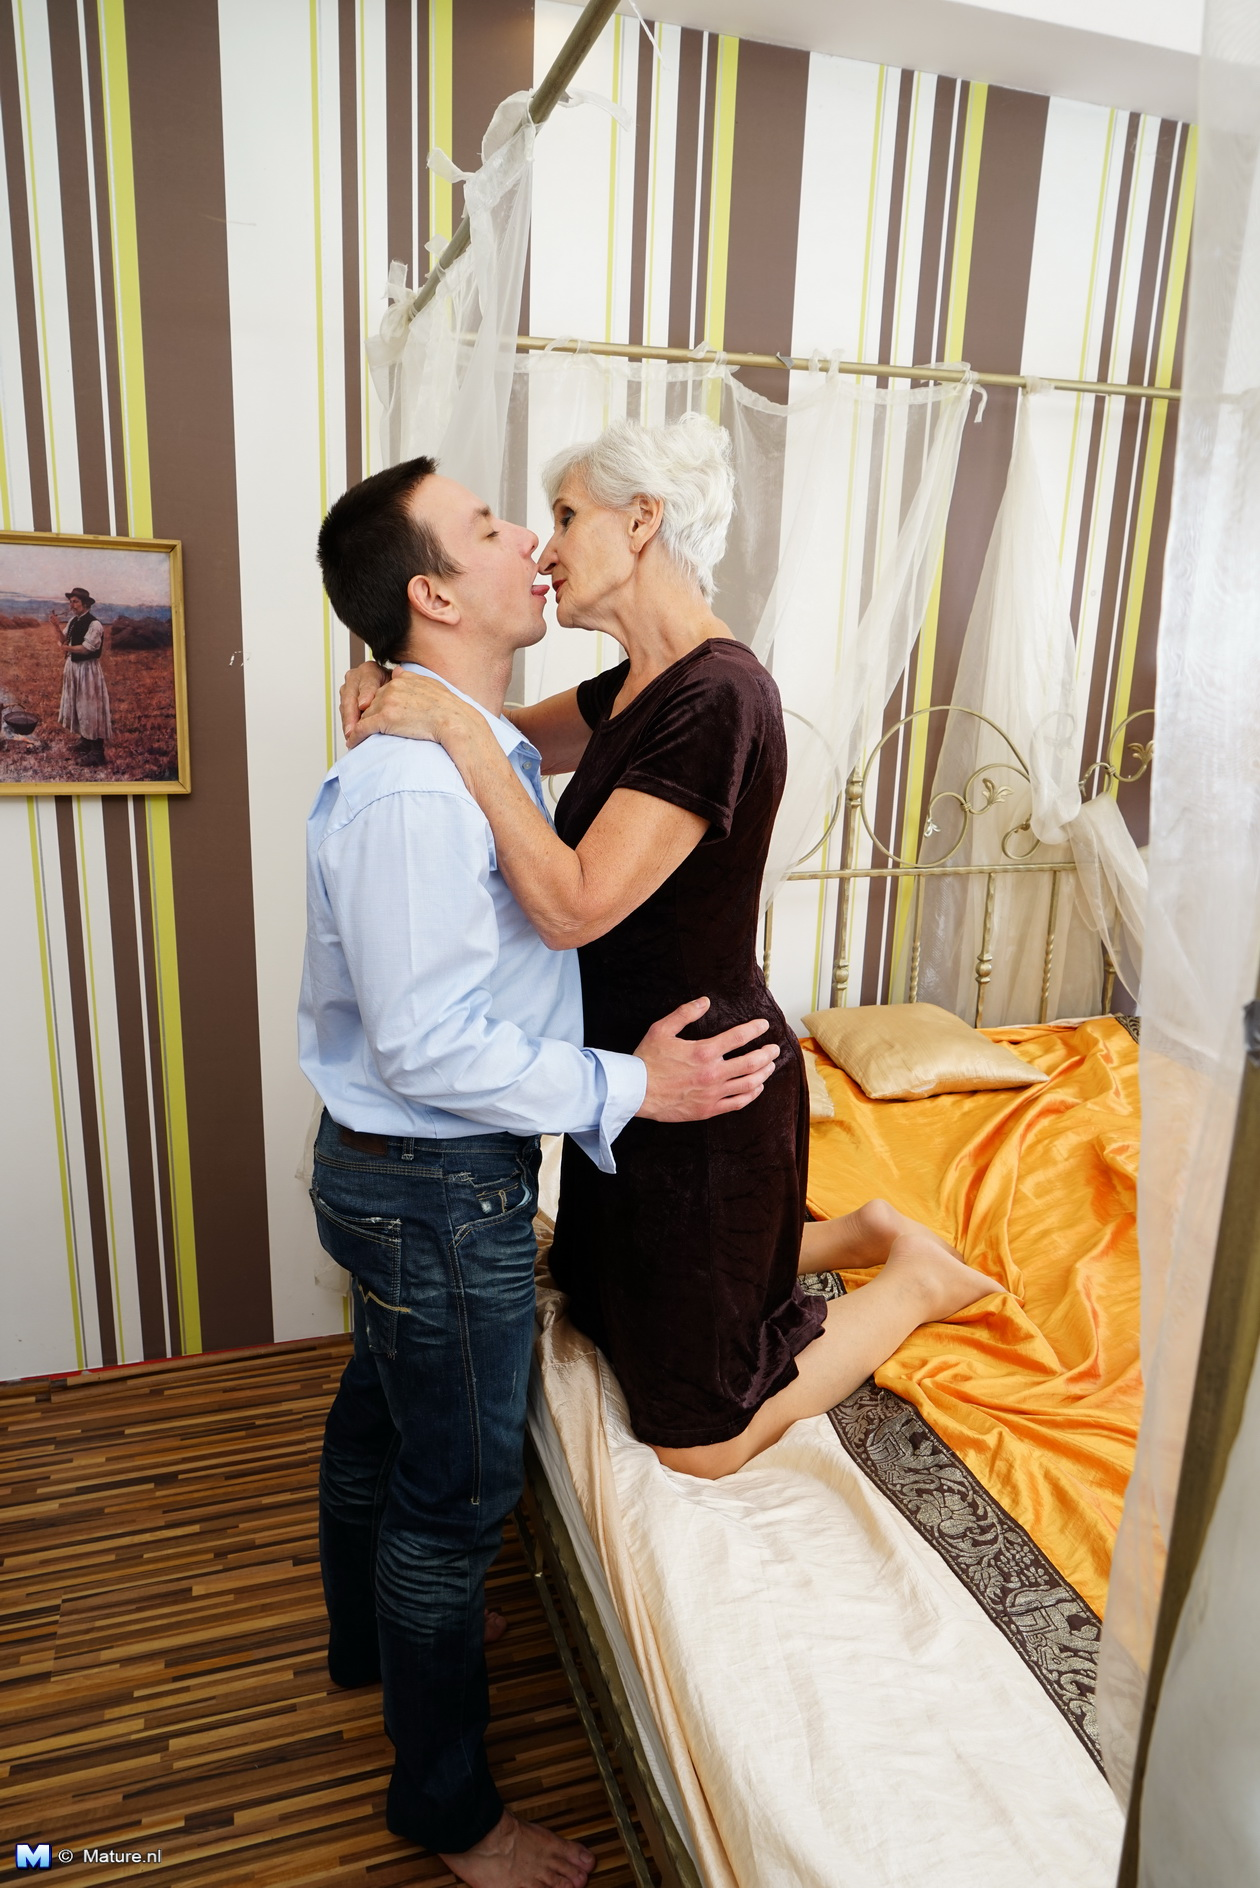 Horny mature woman playing with her toy boy: affiliates.mature.nl/free/custom_galleries/3395/index.php